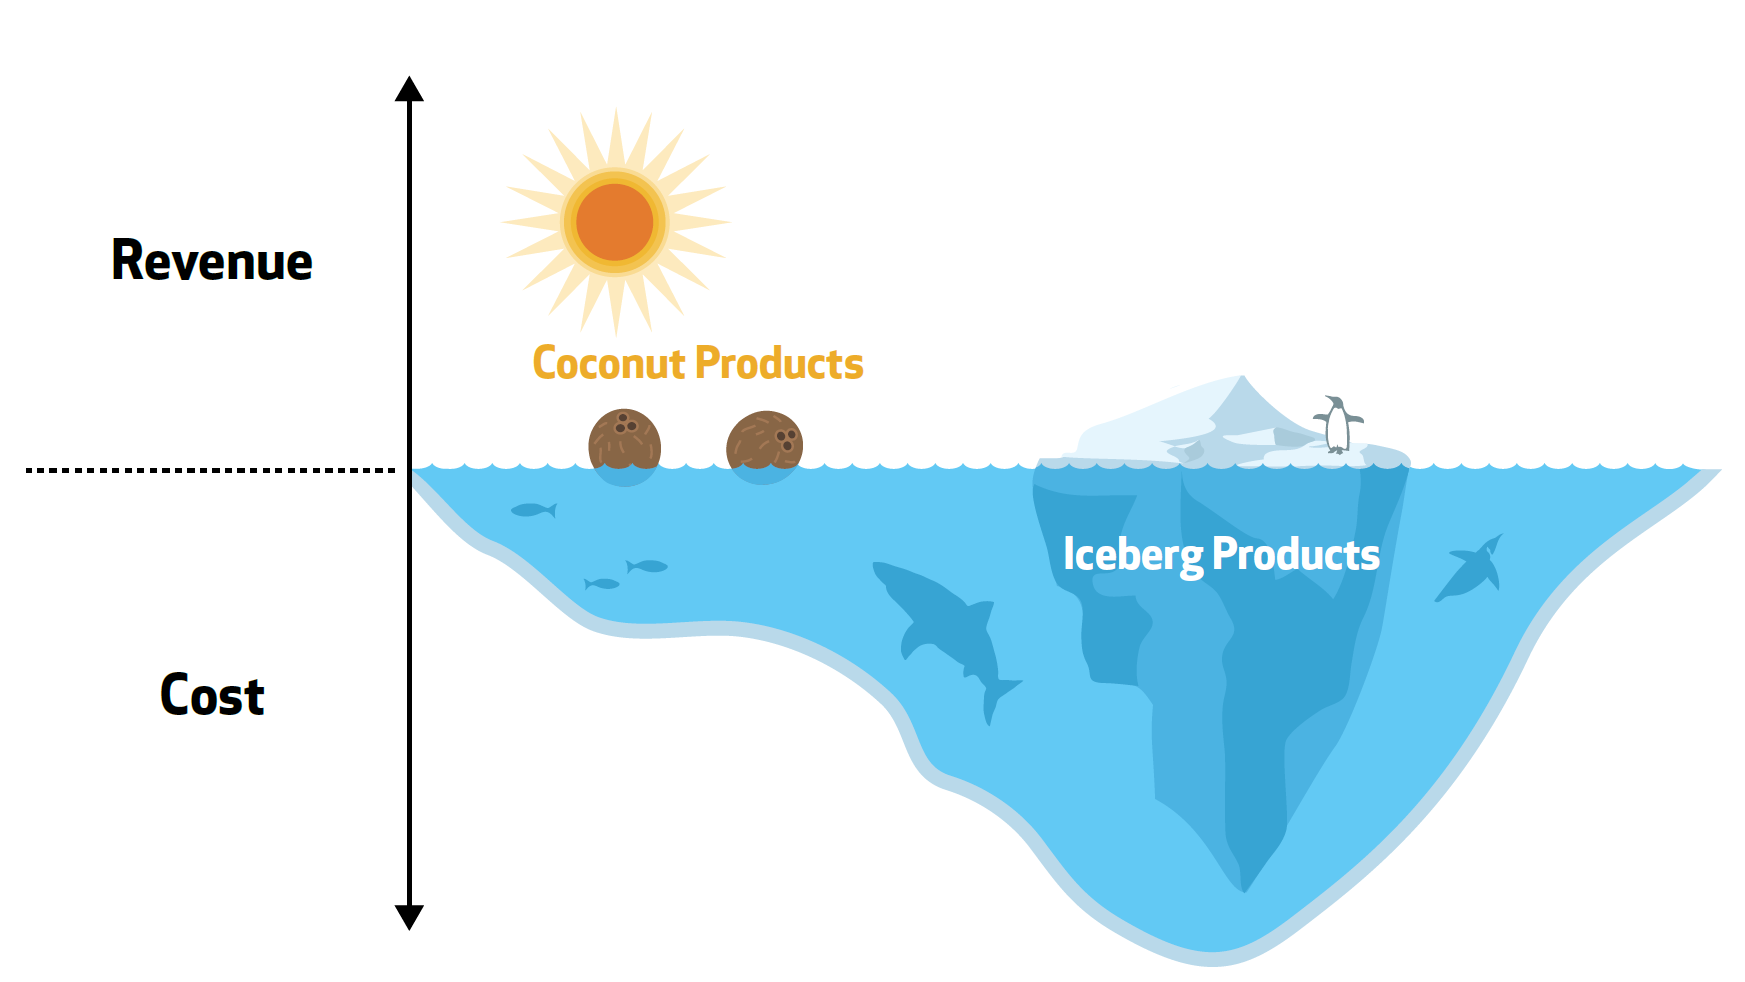 Iceberg and Coconut products